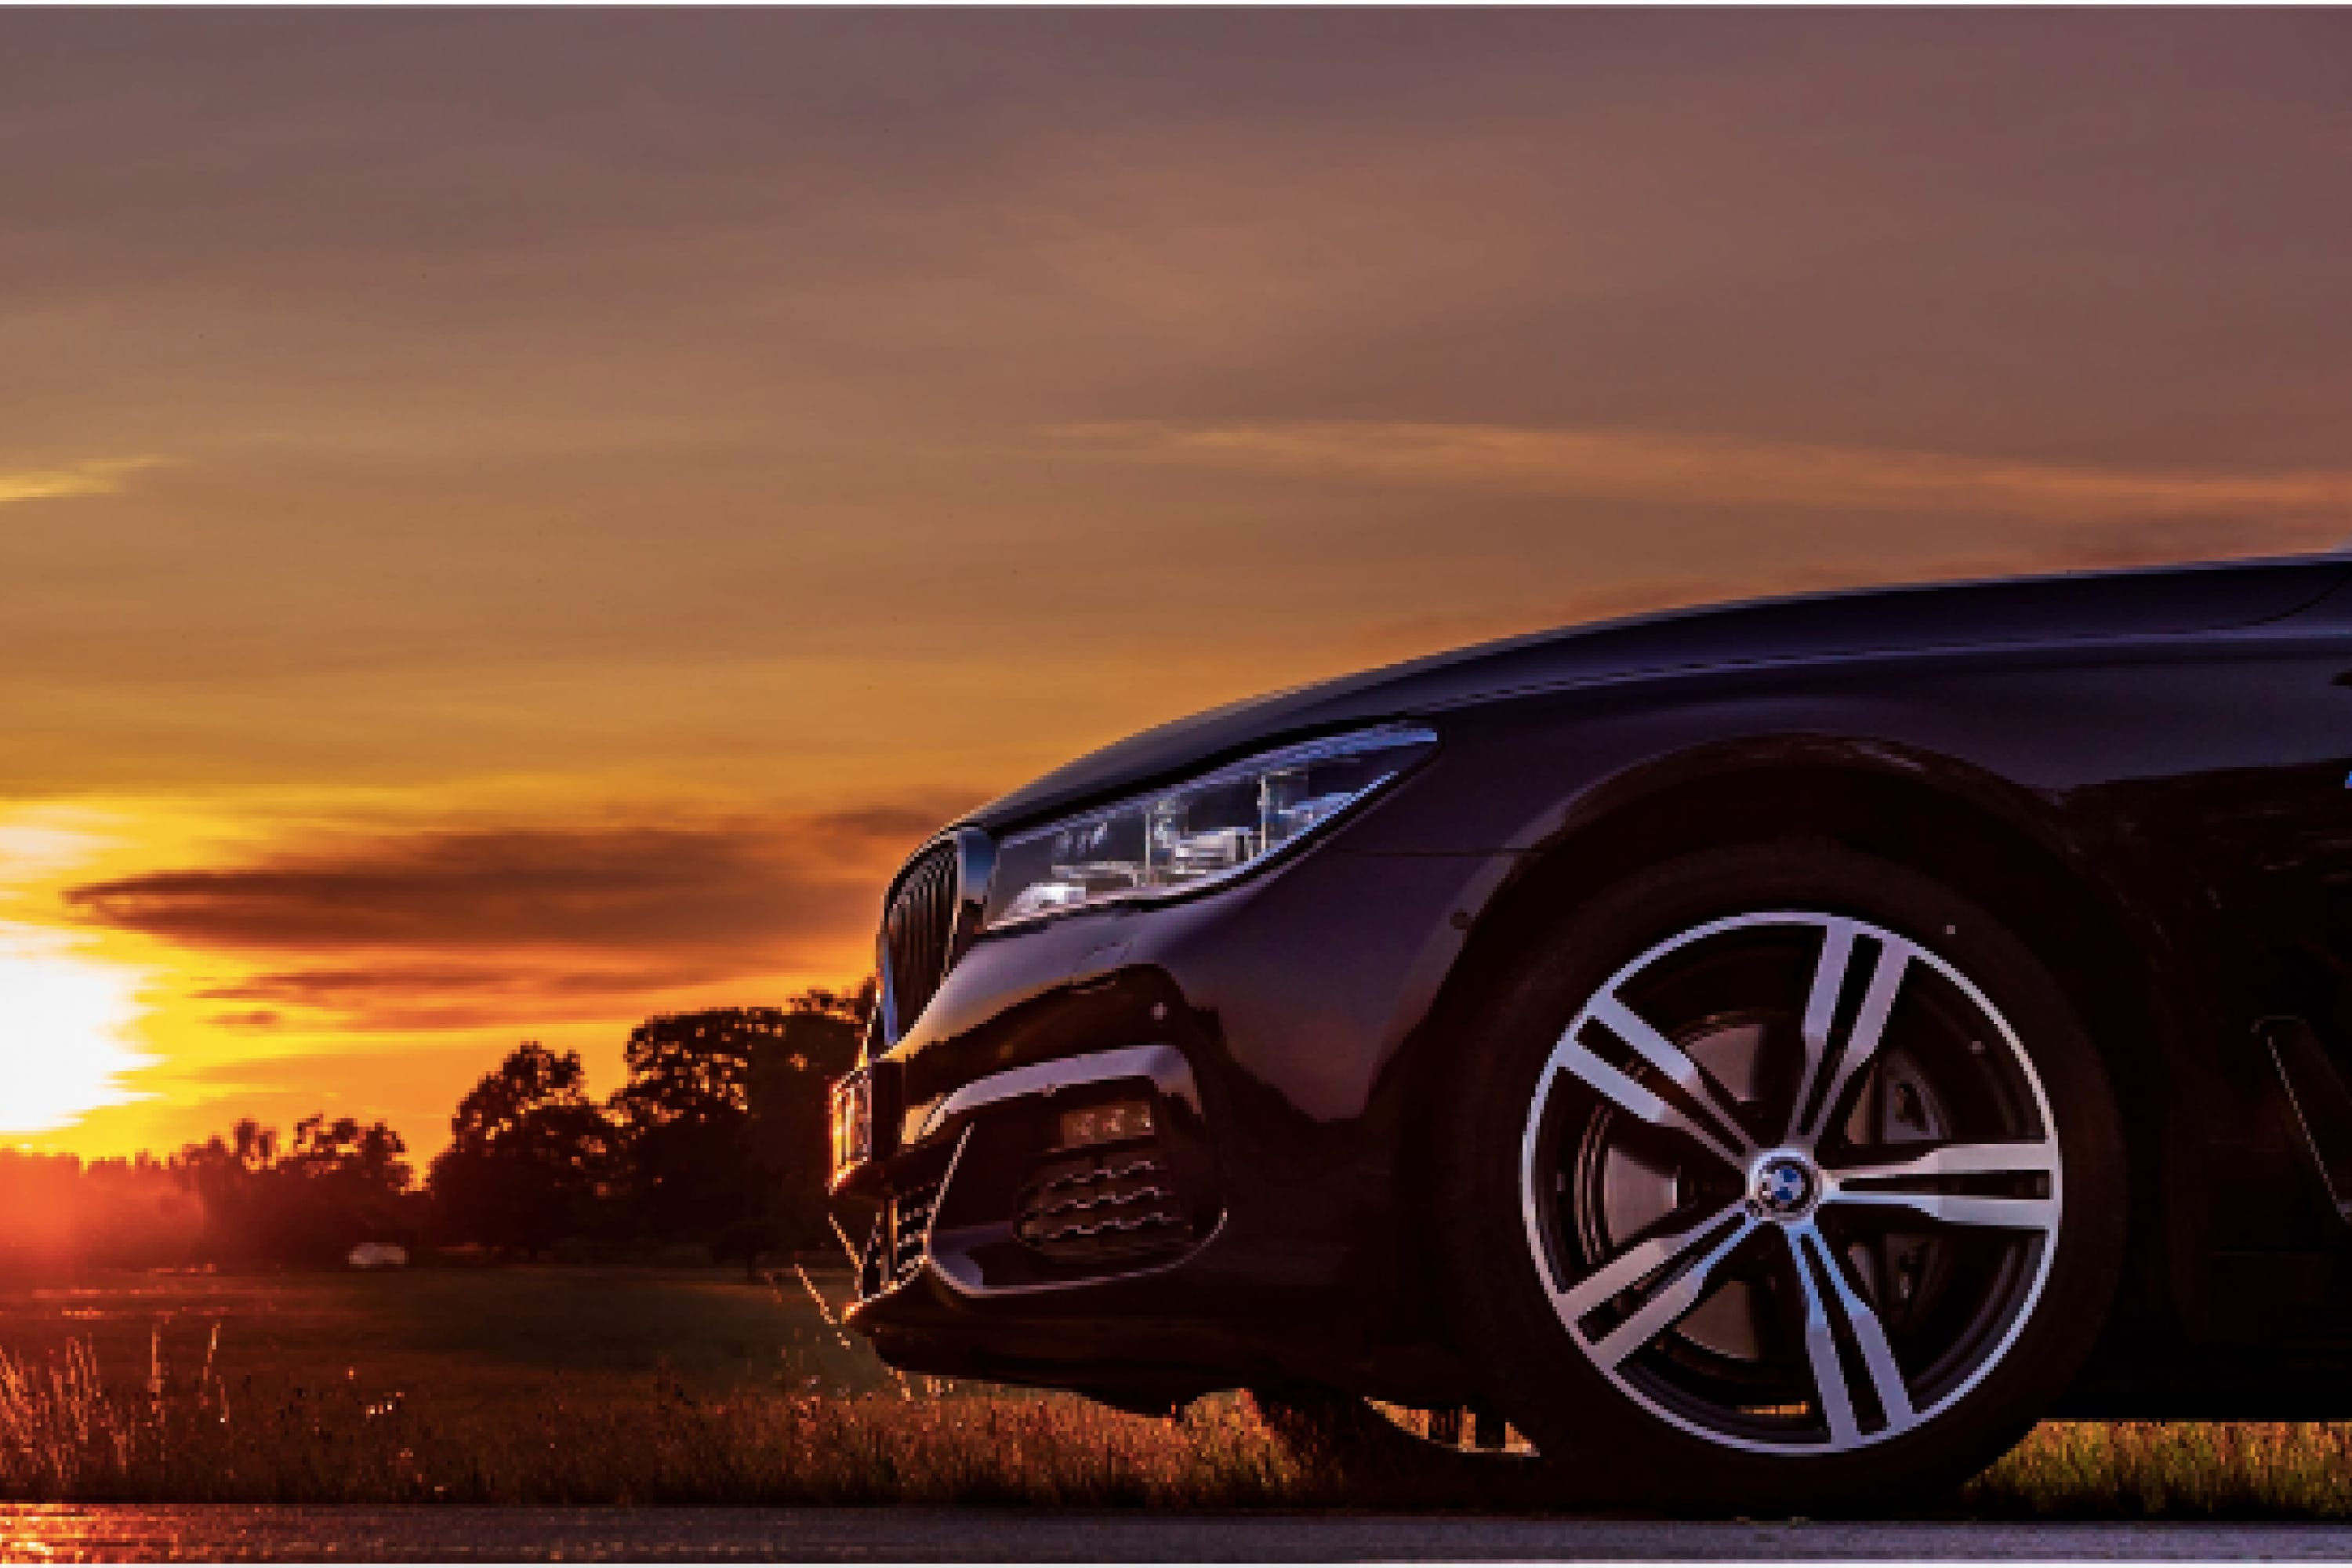 Our vision is to become the world's leading chauffeur driven services company